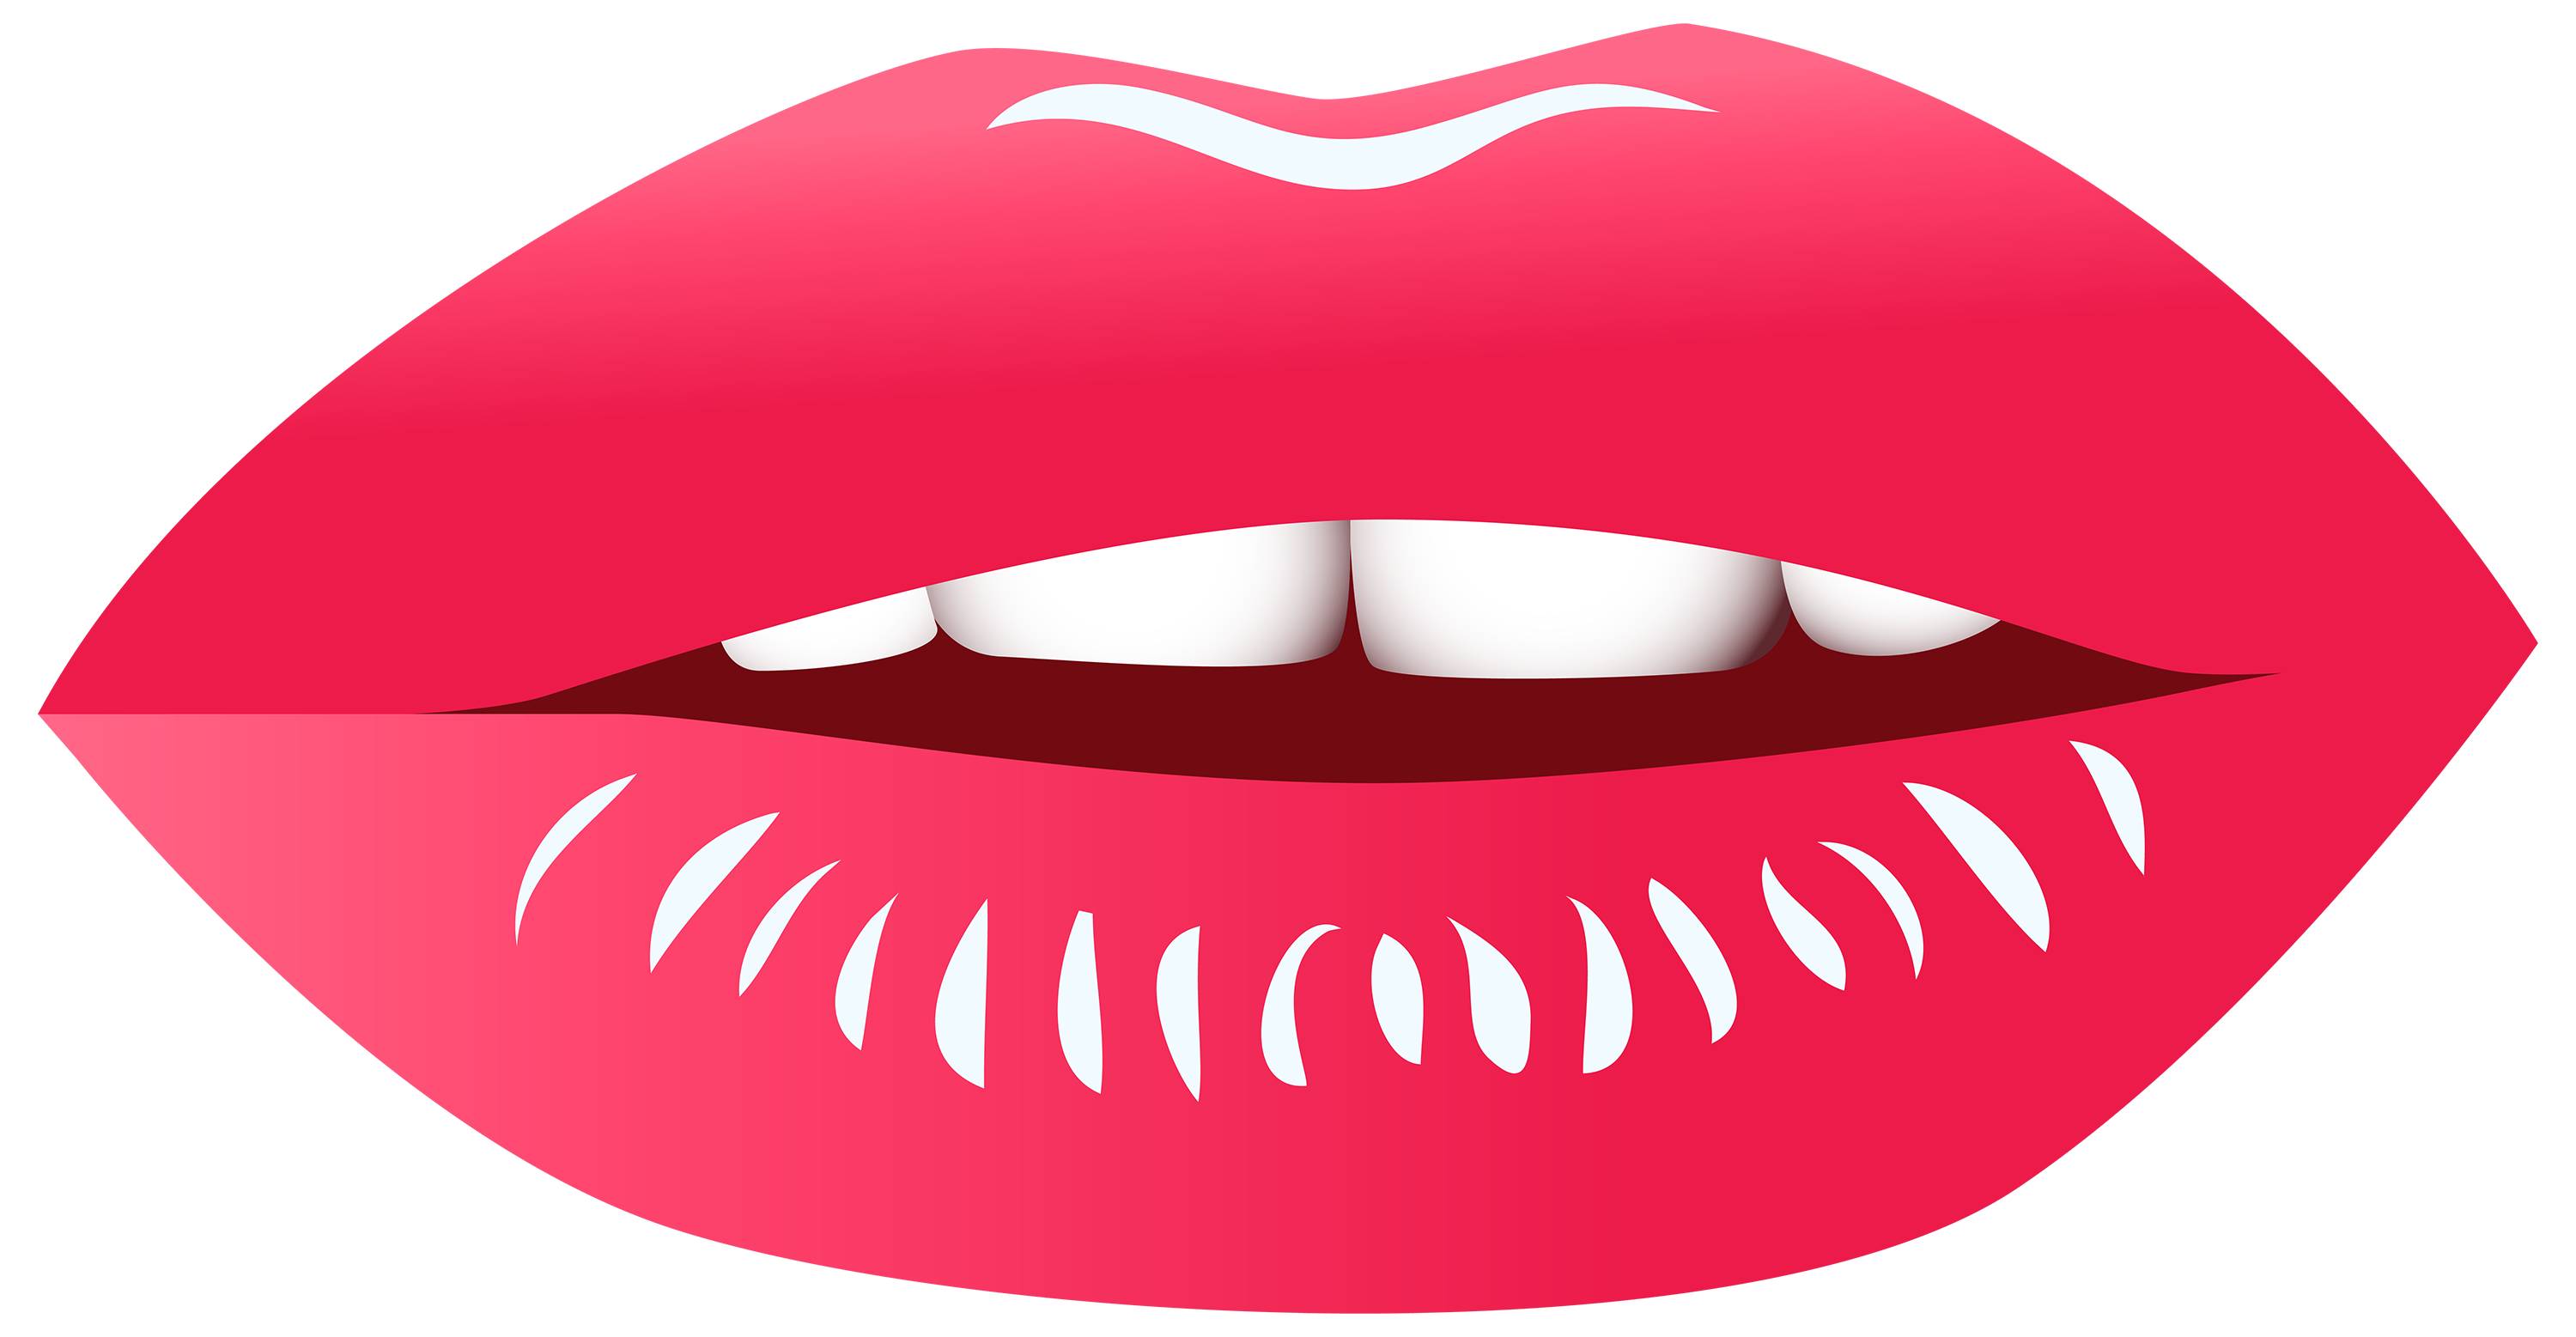 3000x1557 Mouth Png Clipart